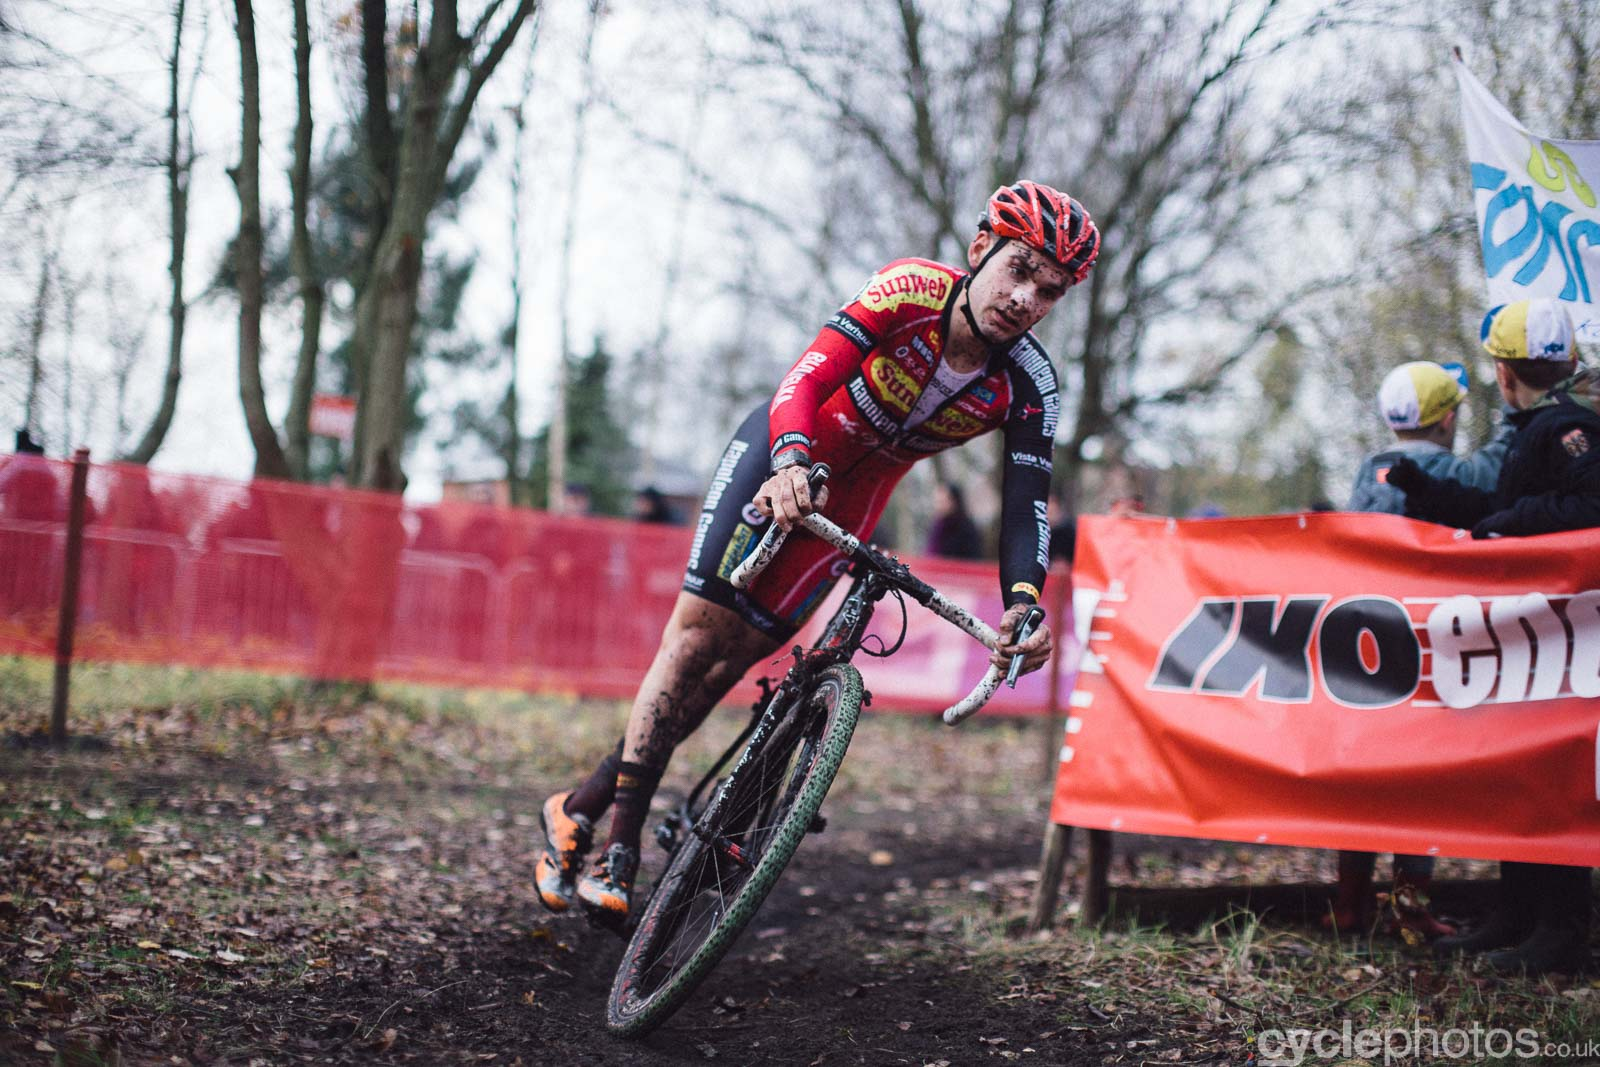 2015-cyclephotos-cyclocross-essen-153859-gianni-vermeersch